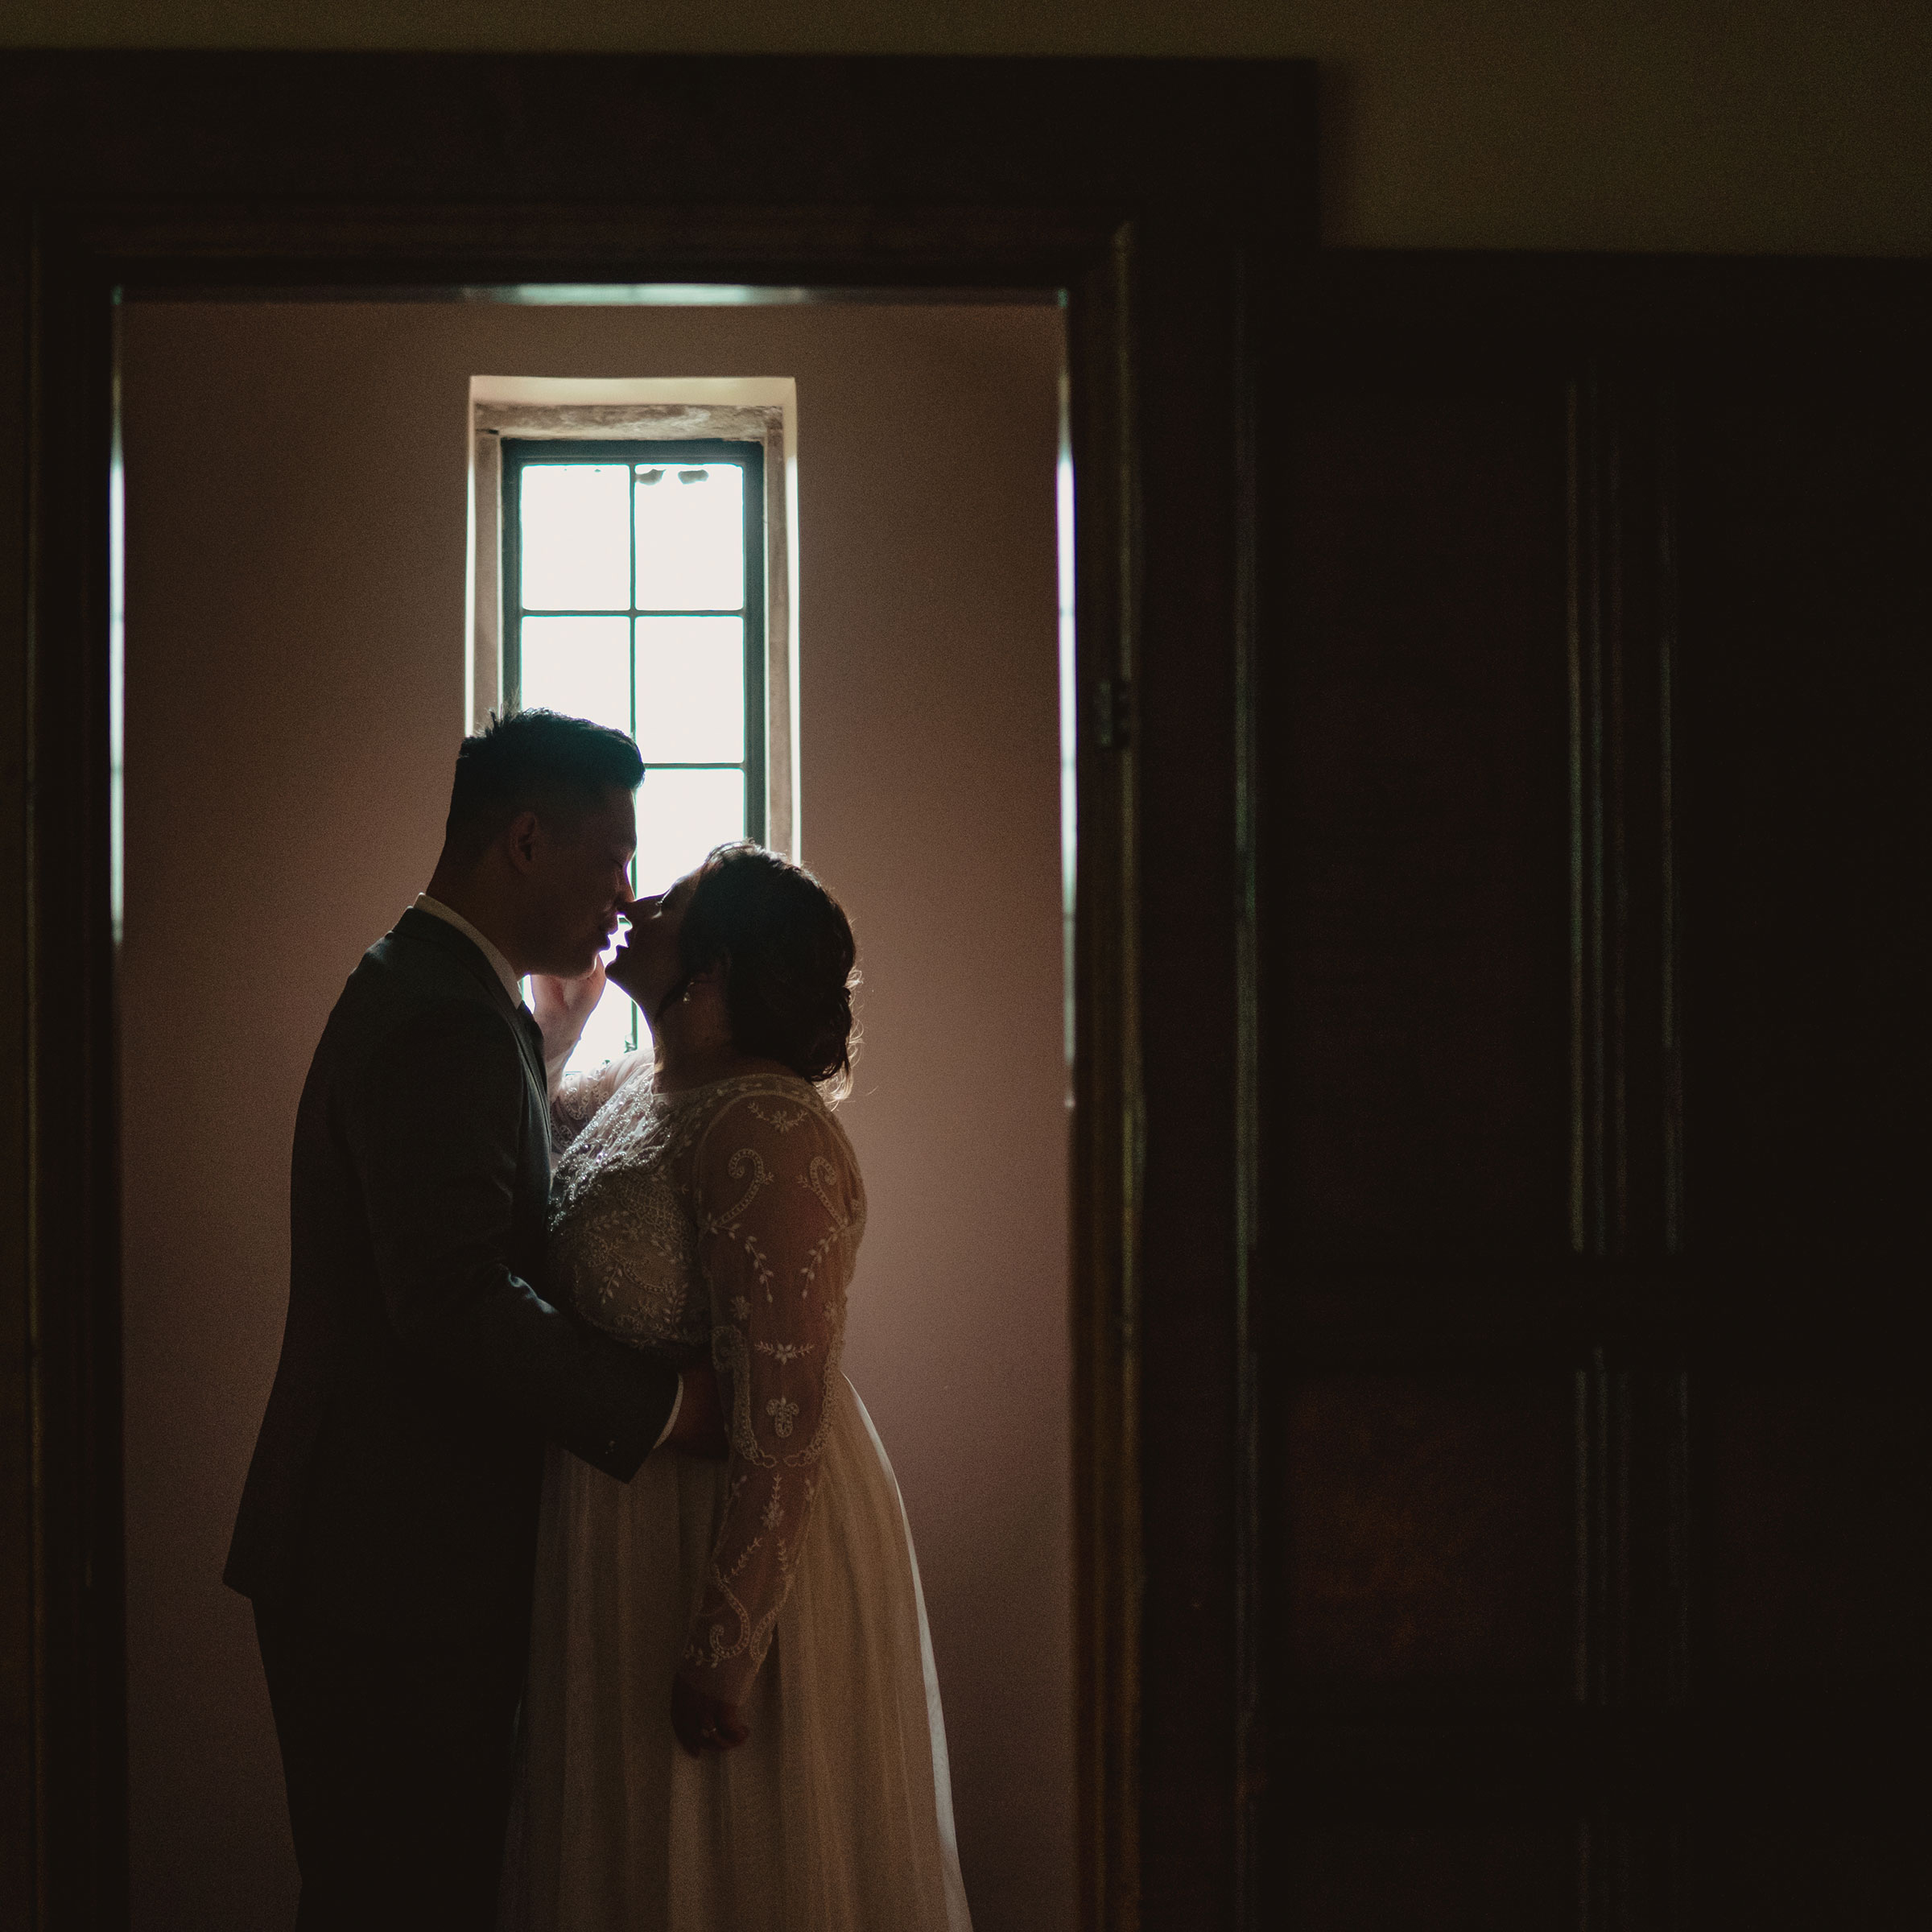 bride-groom-kissing-in-small-room-through-door-wedding-salisbury-house-desmoines-iowa-raelyn-ramey-photography.jpg